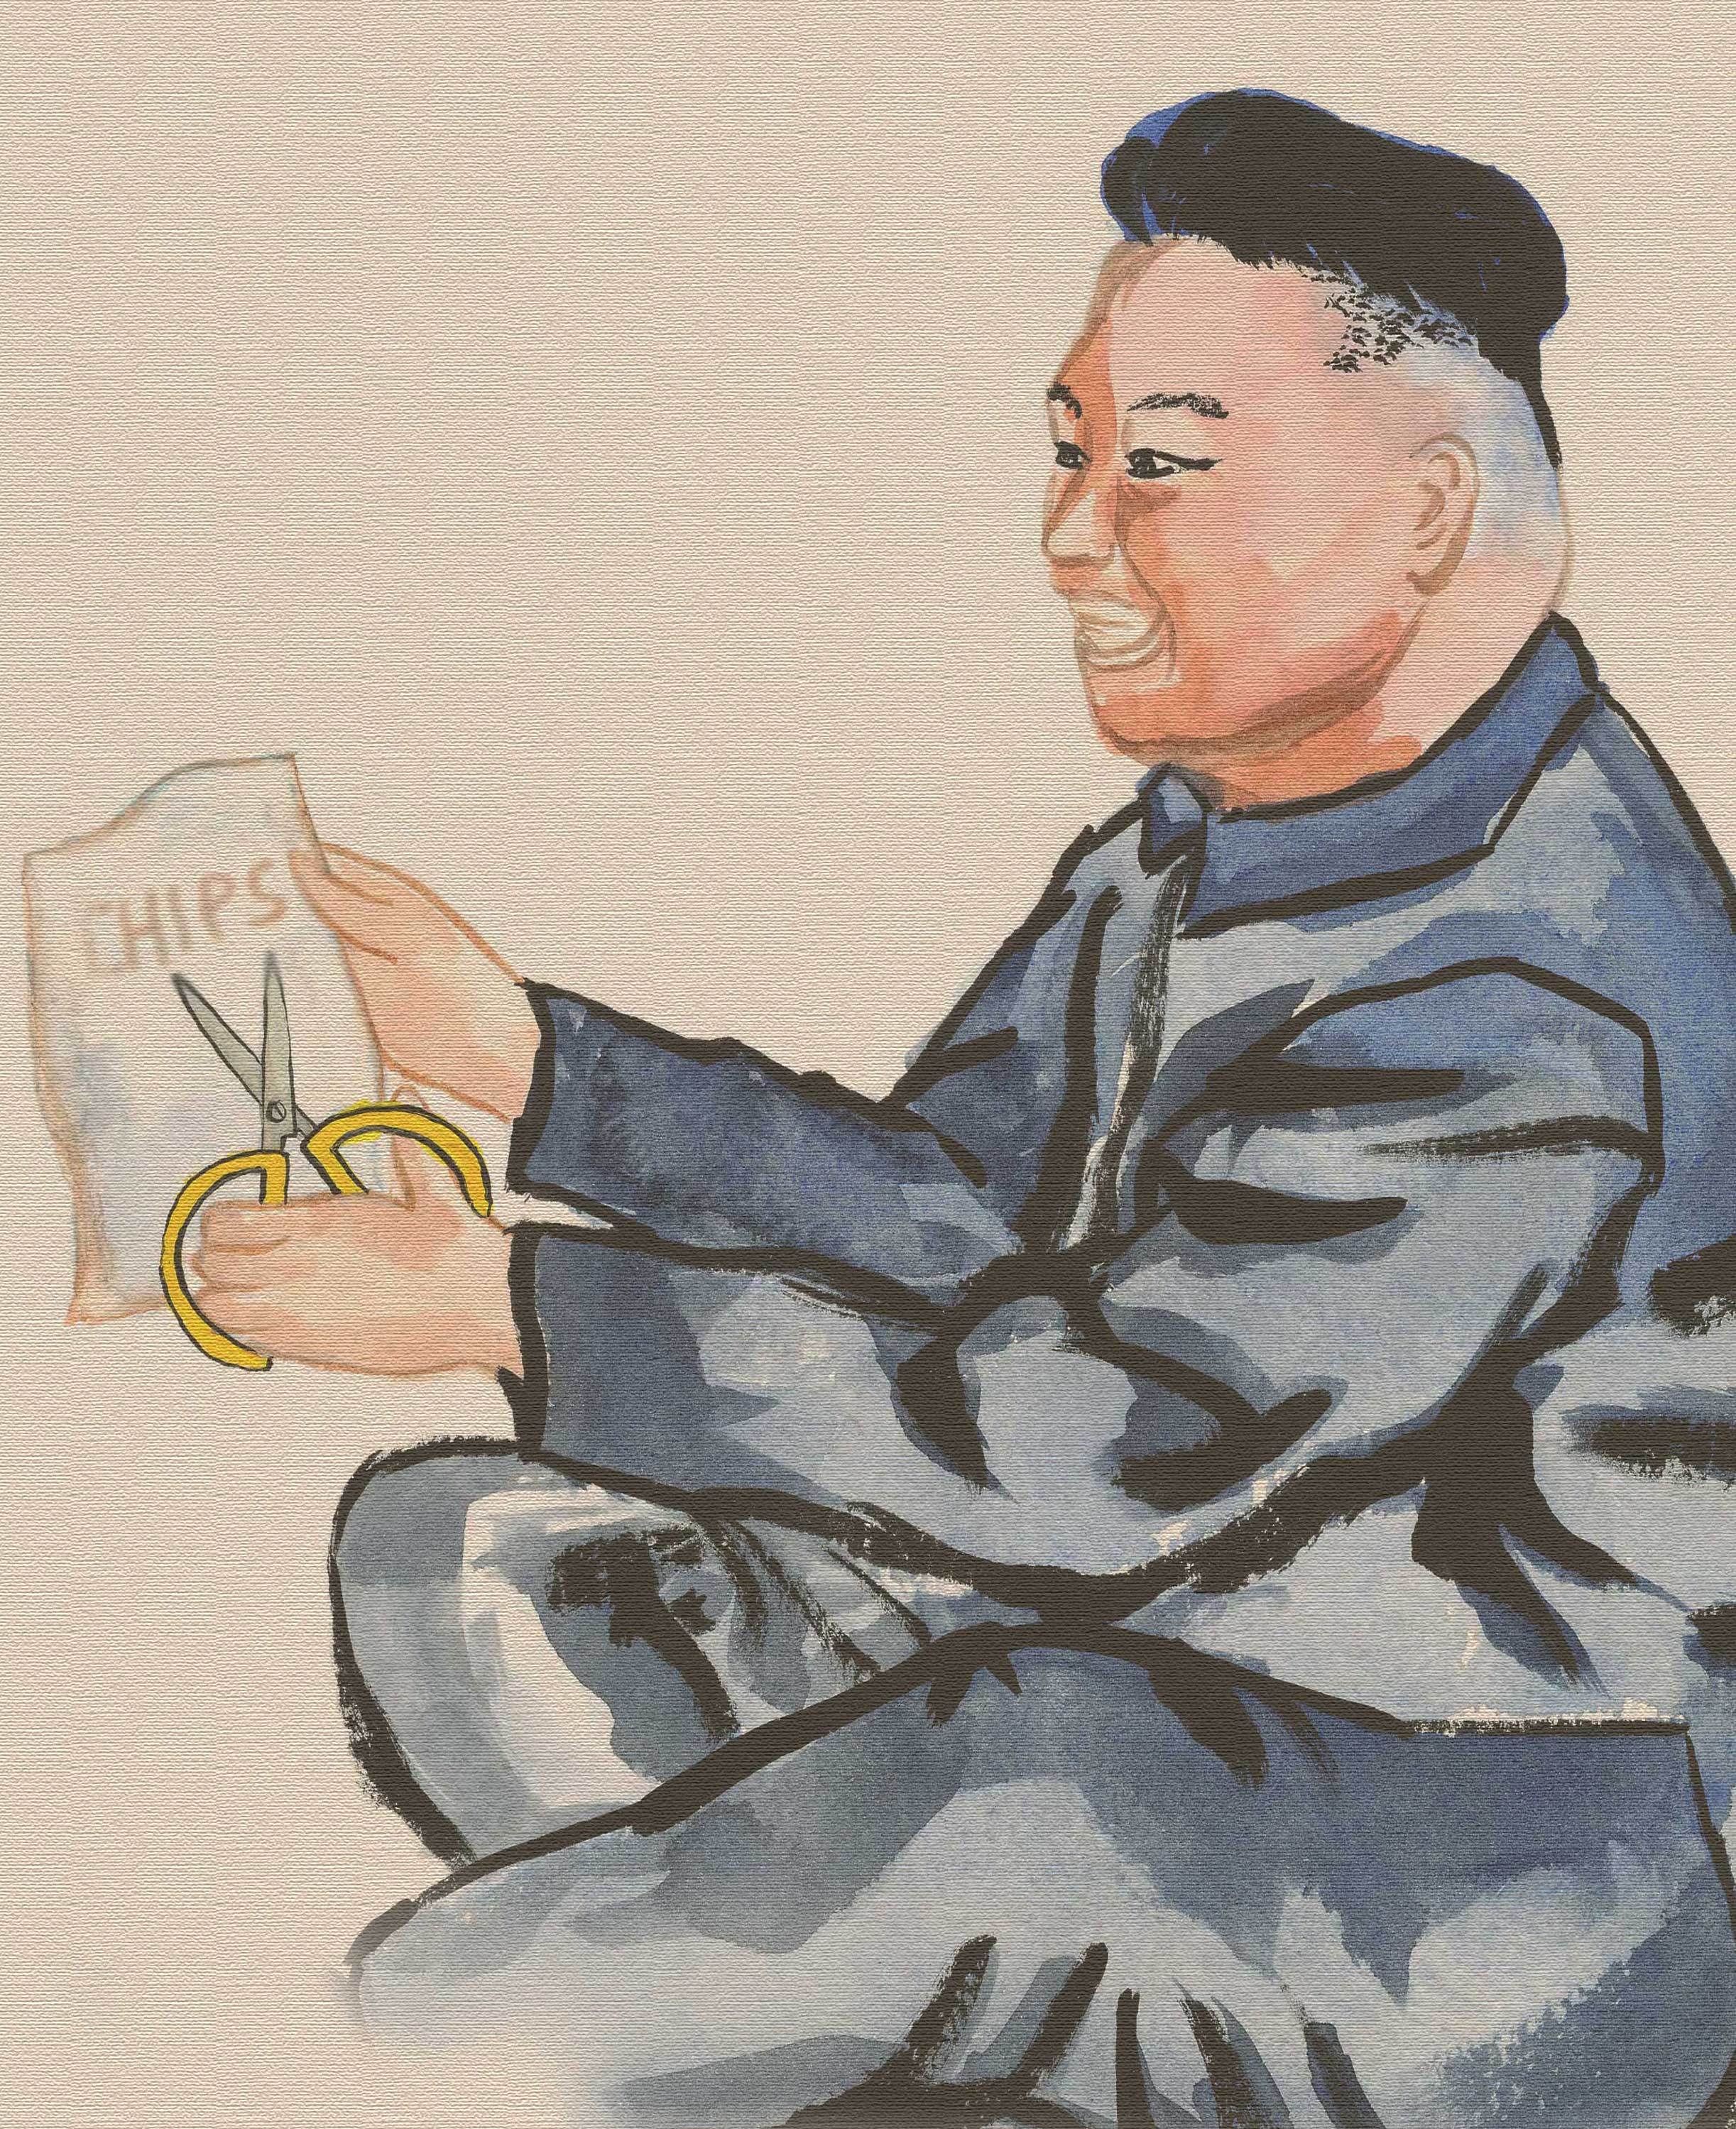 Kim Jong Un, opening a bag of chips in the civilized way